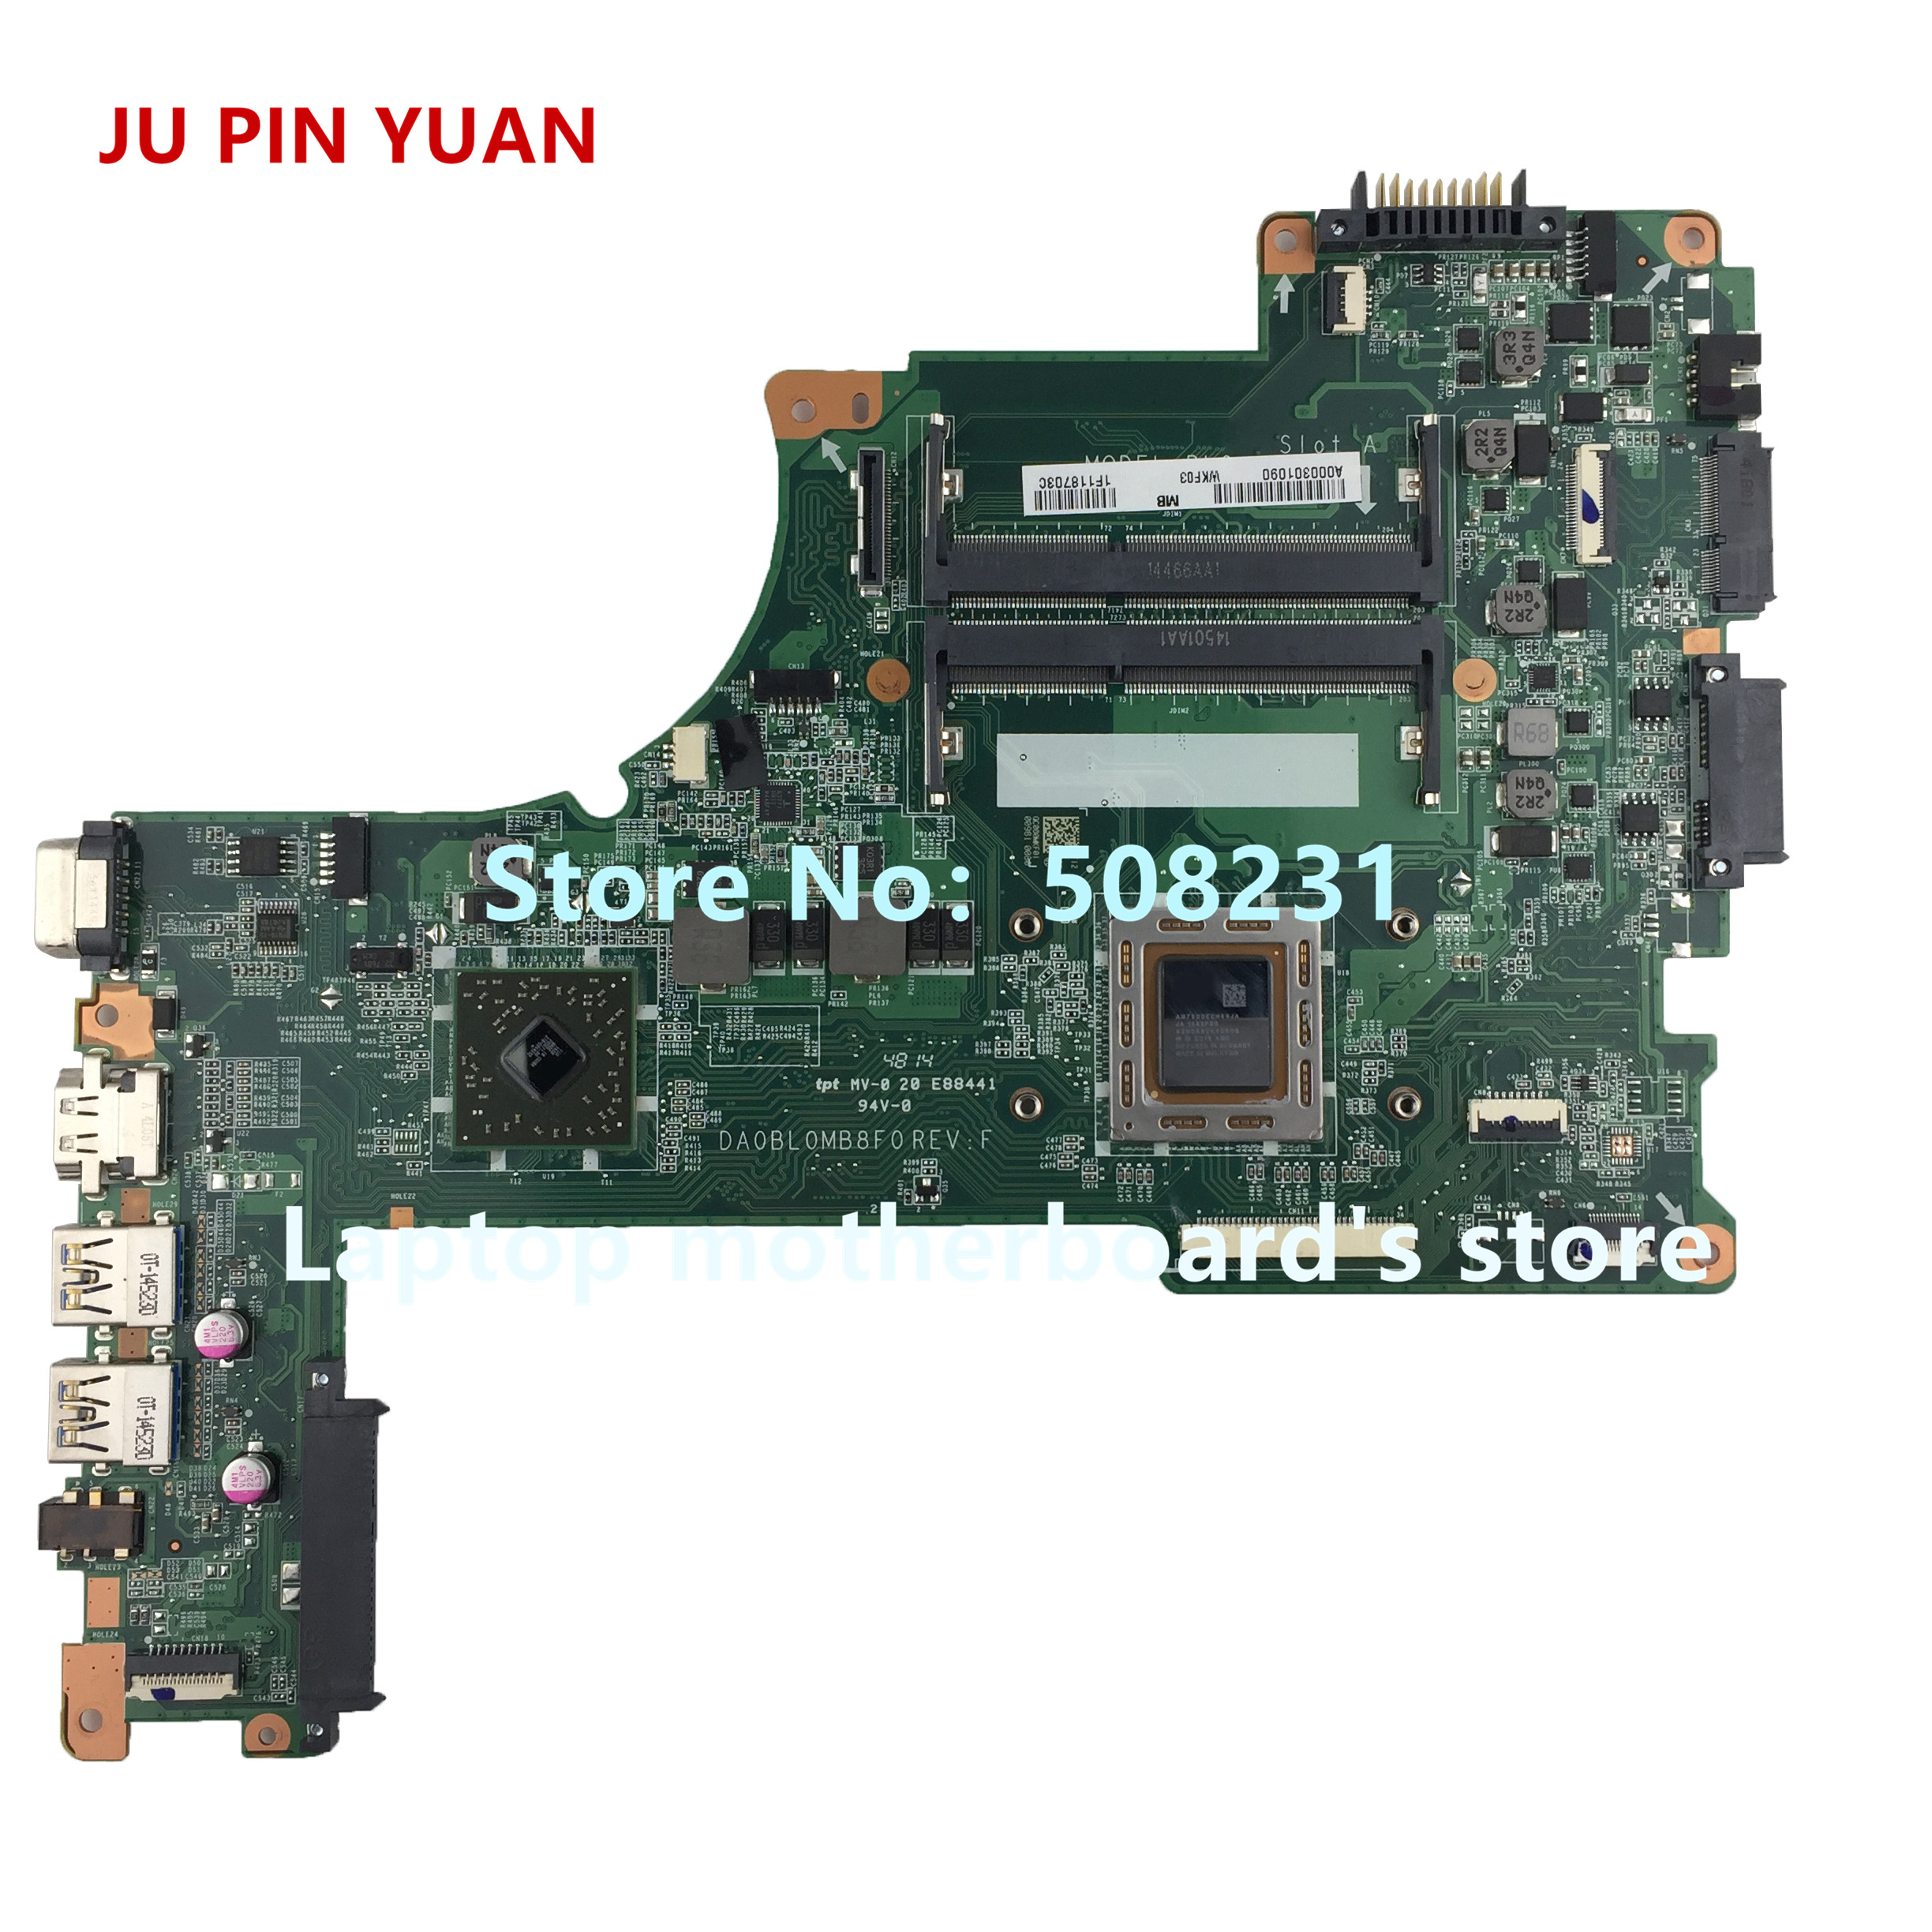 JU PIN YUAN A000301090 Mainboard For Toshiba Satellite L50D L55D L50D-B L55D-B Laptop Motherboard DA0BL0MB8F0 With A10-7300 CPU